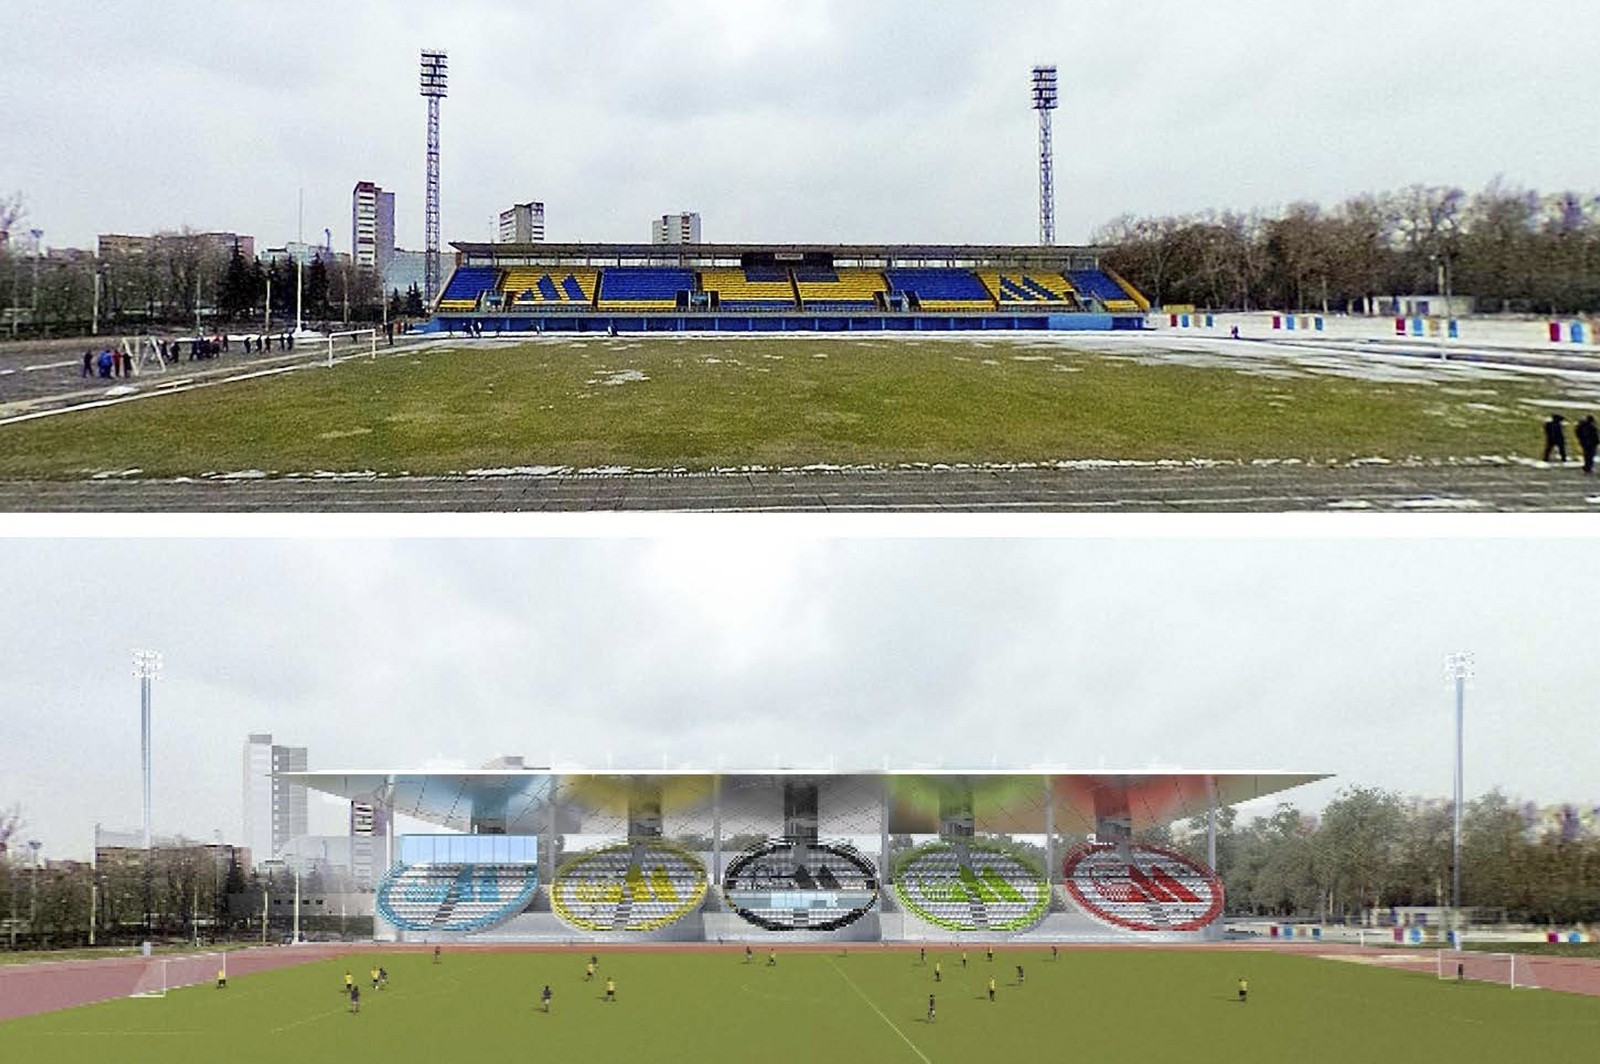 Stadion Moskvich